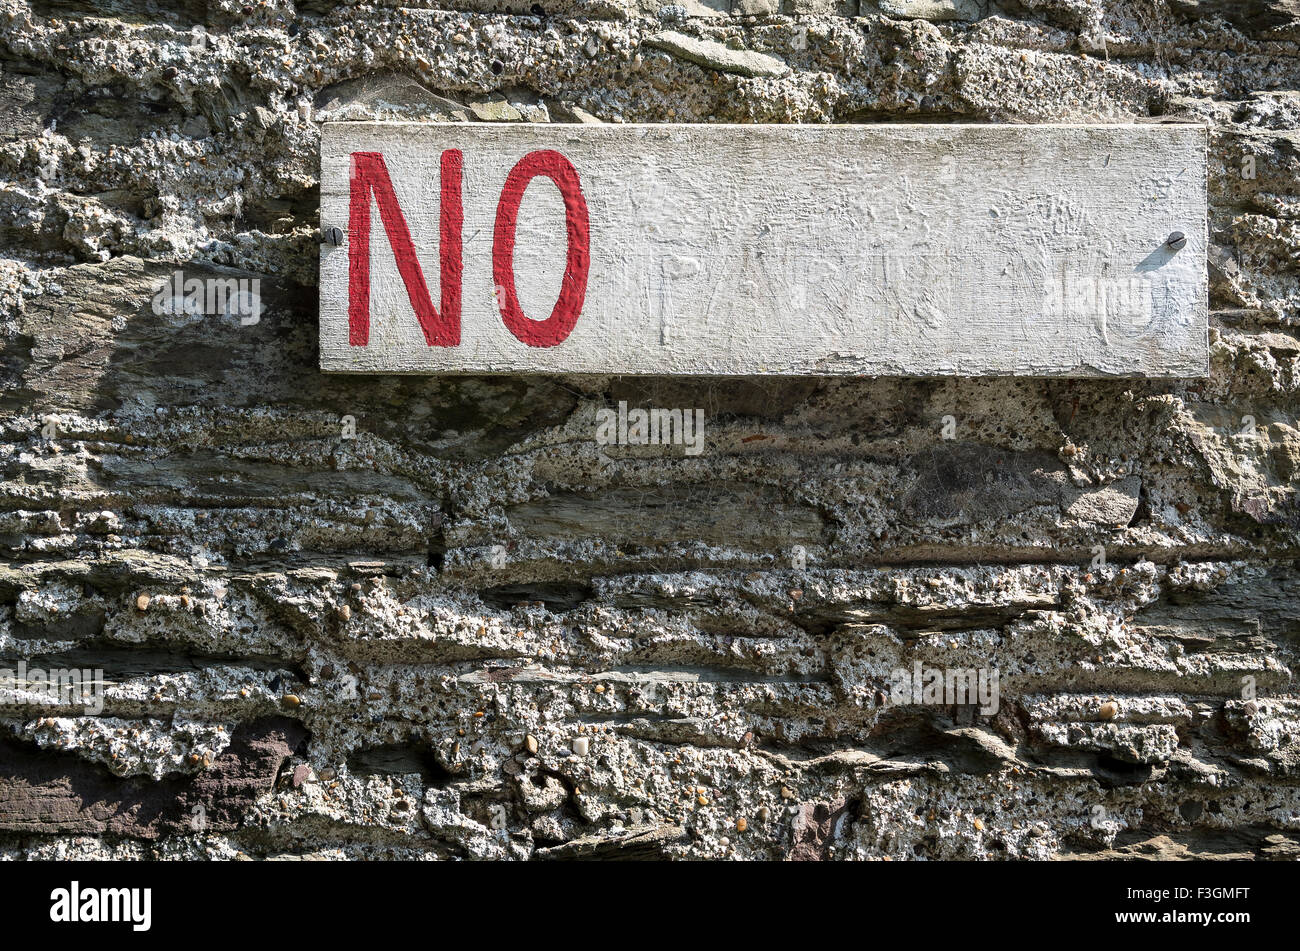 Incomplete warning sign on wall announcing NO - Stock Image